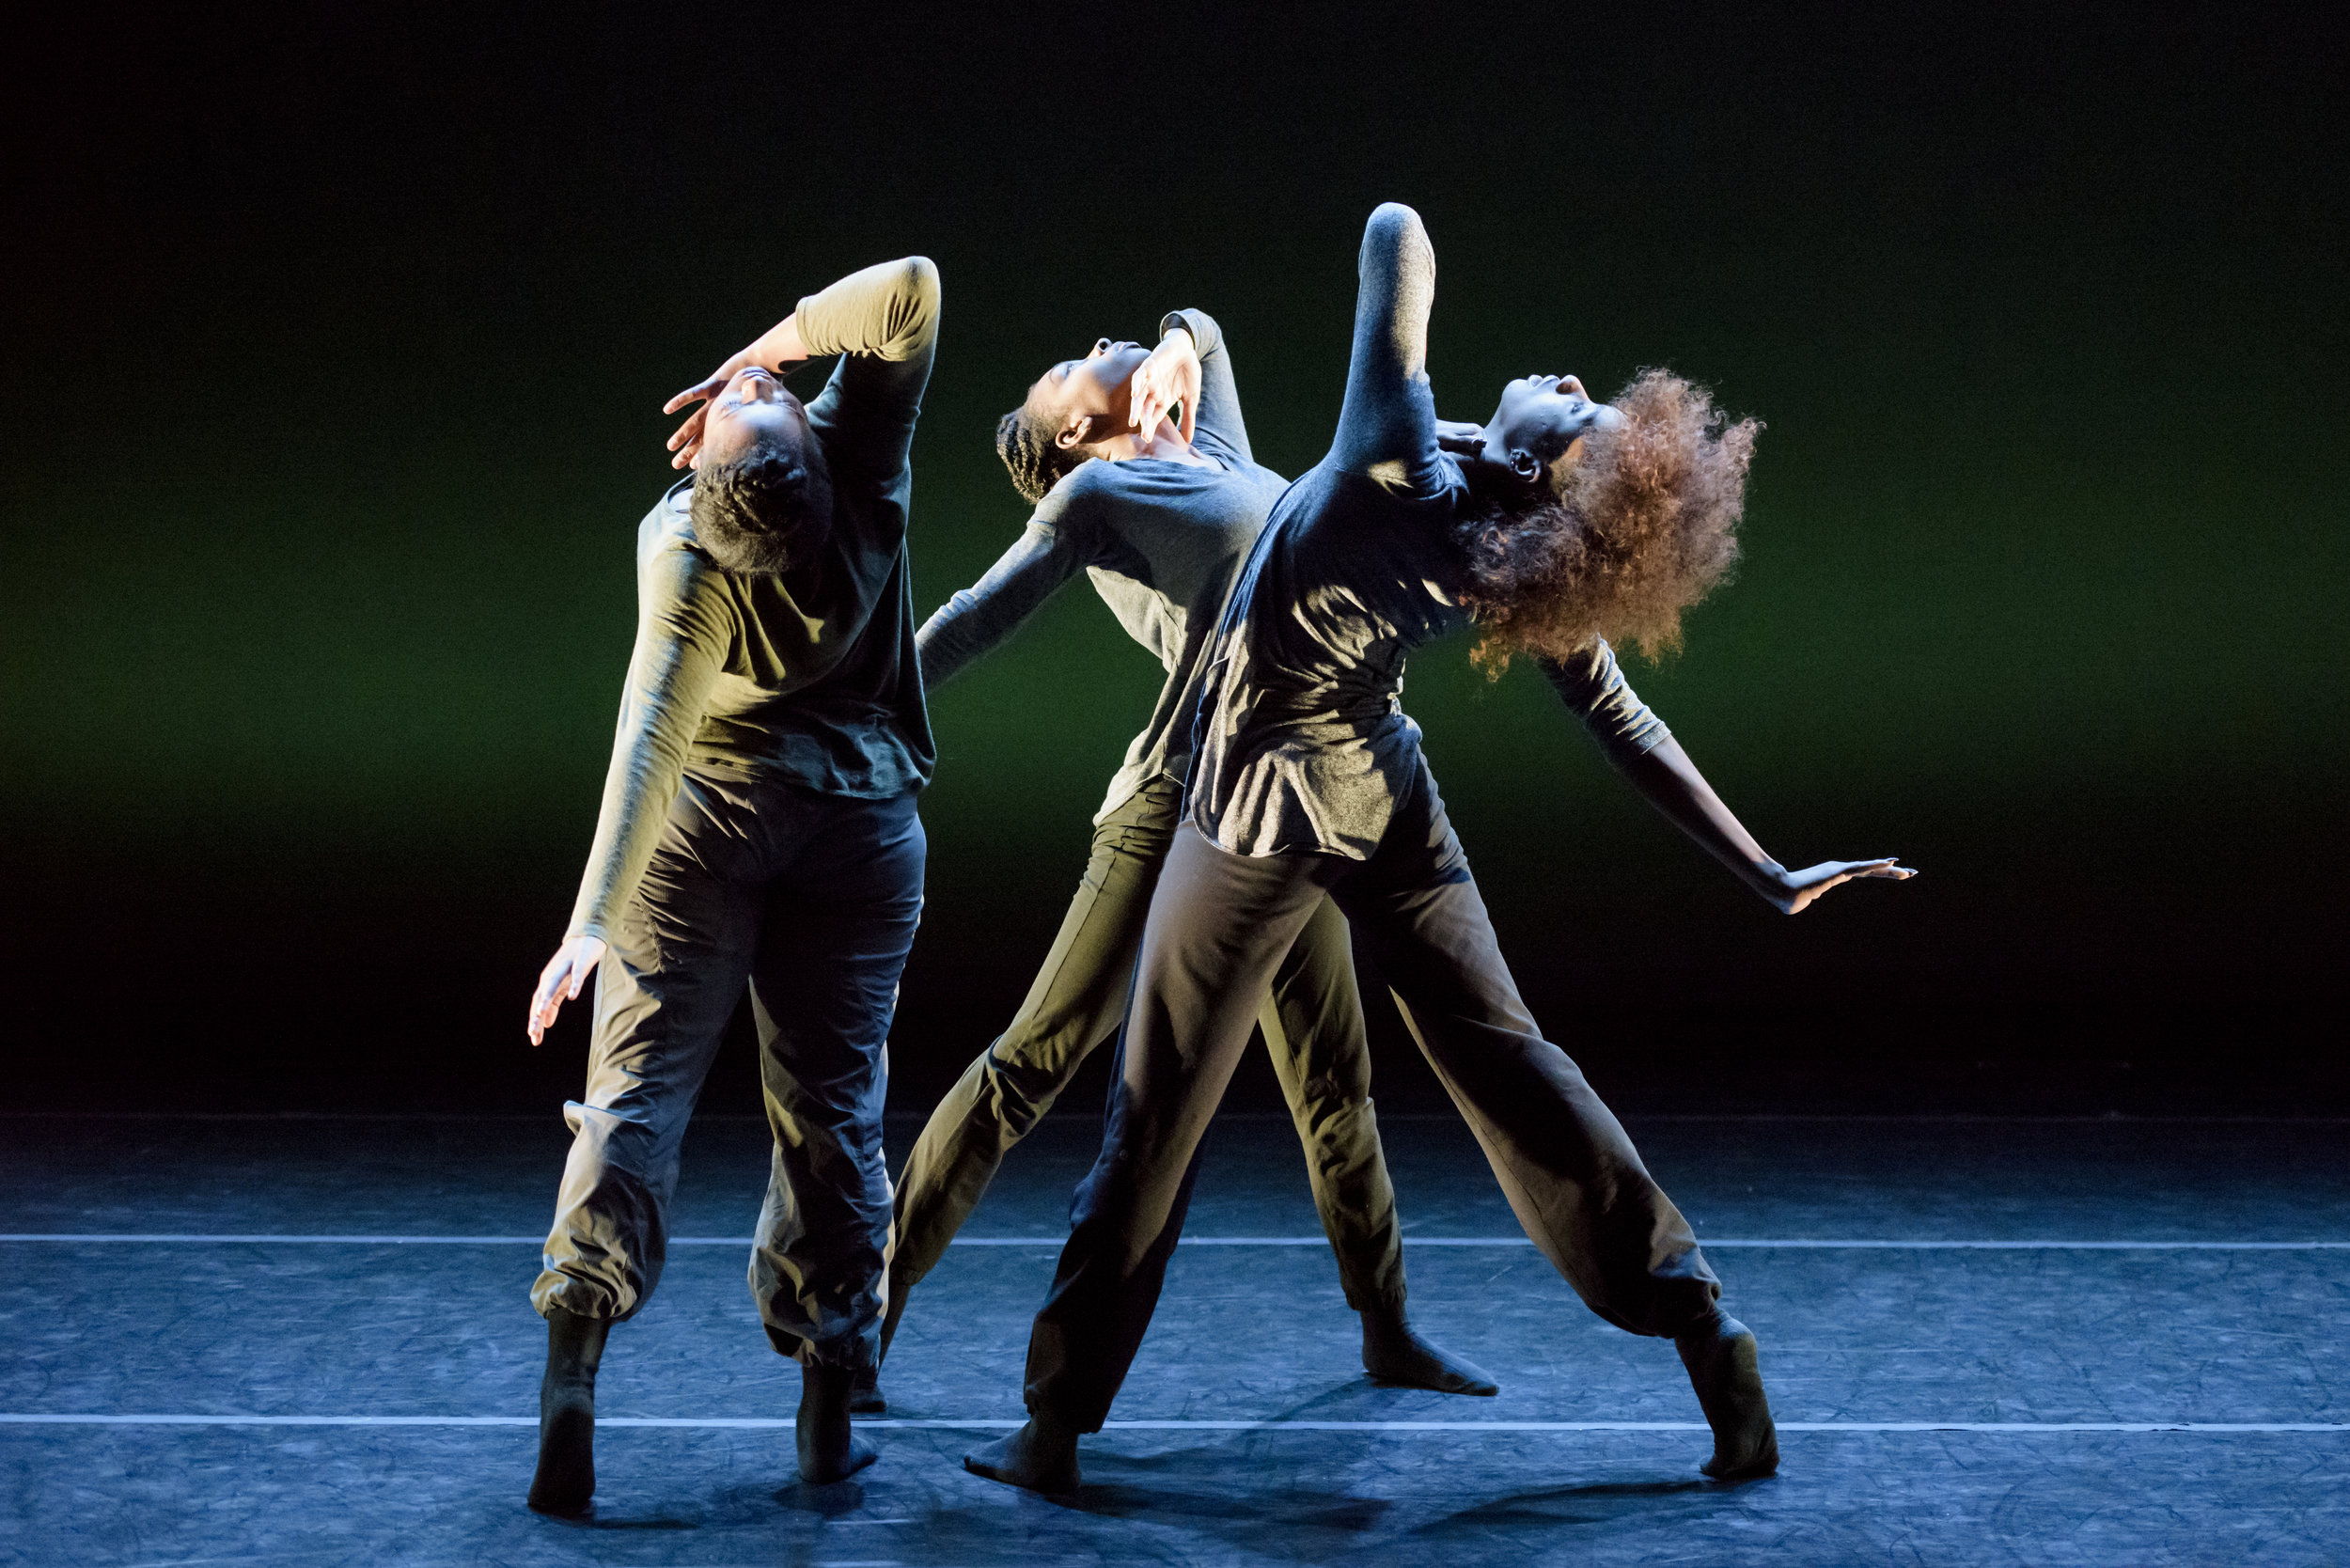 Choreography by Tarik OMeally     Pictured: Lateisha Melvin, Shanice Mason, and Tyesha Nance    Photo Credit: Marketa Ebert